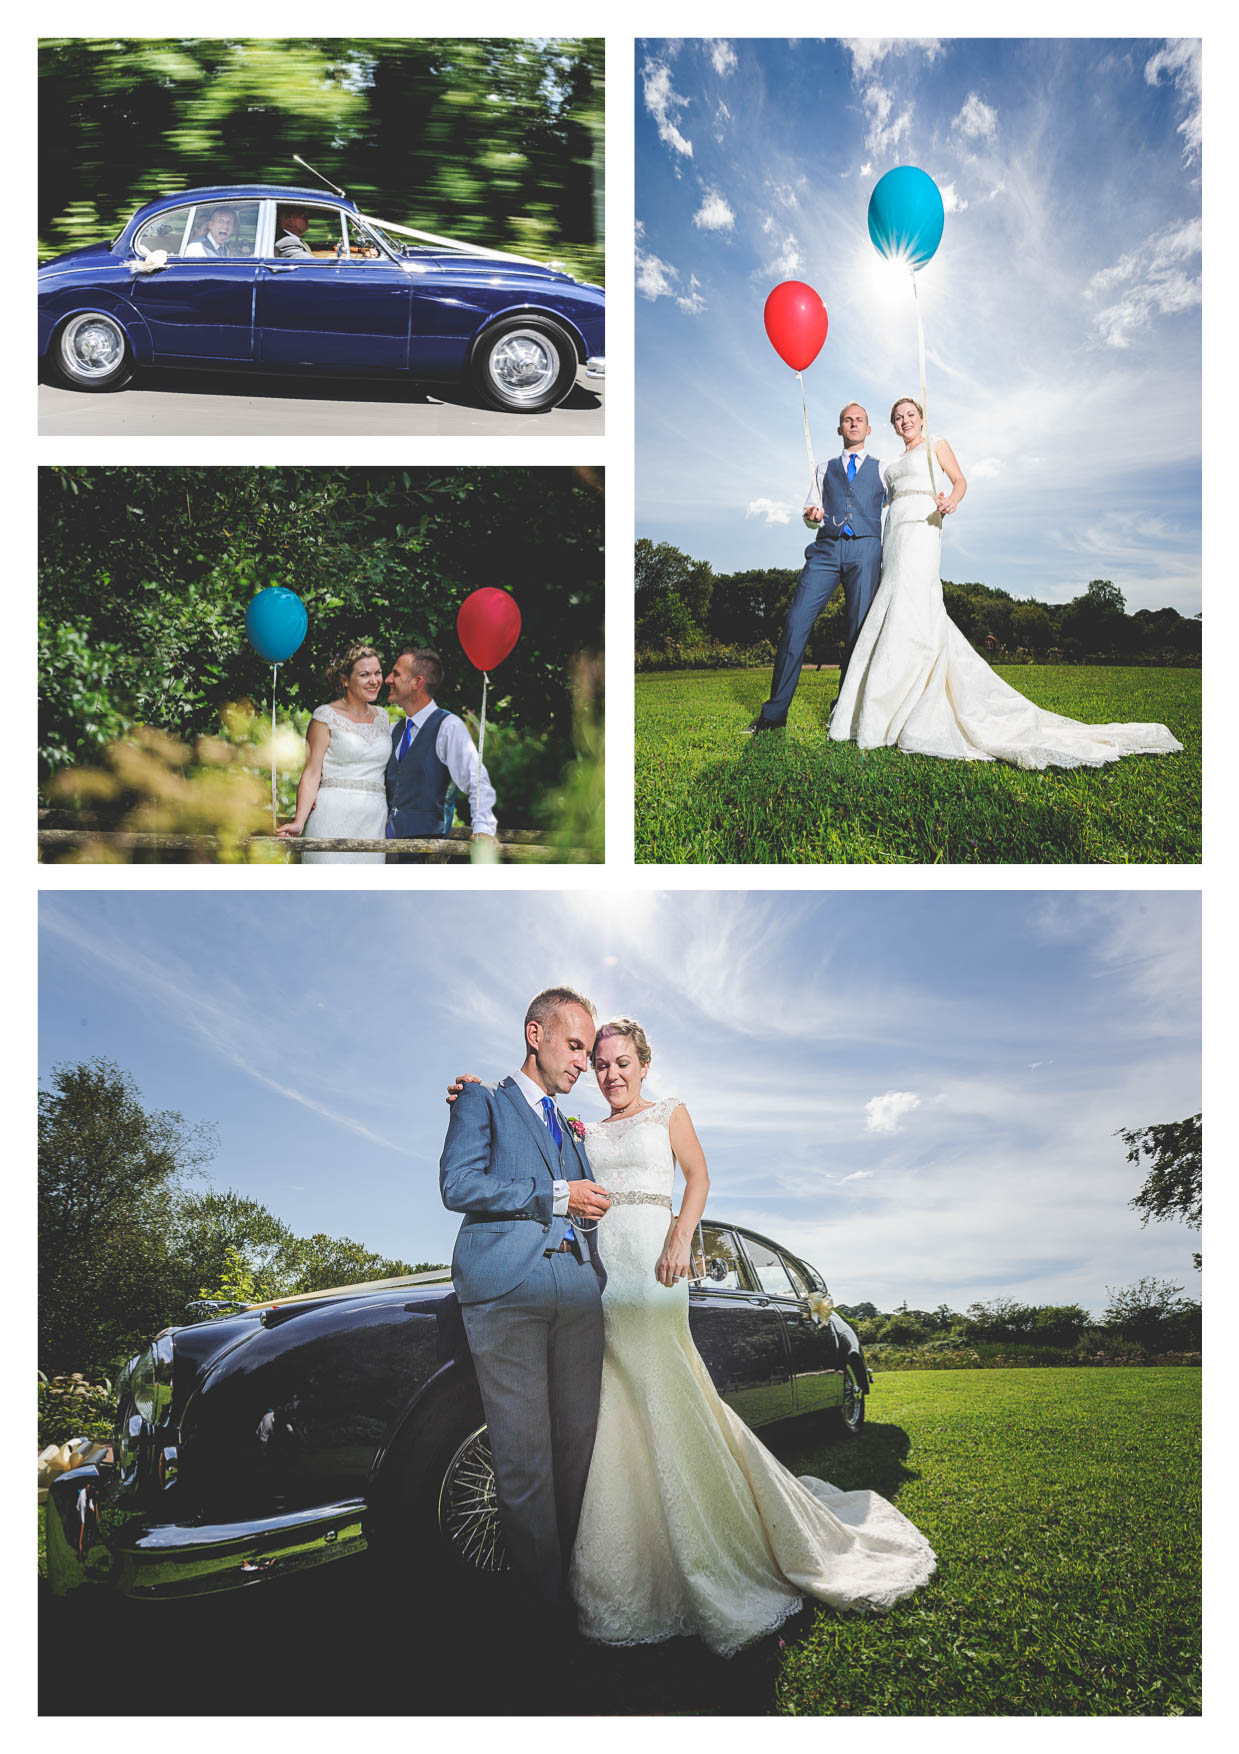 A bride and groom with an old jaguar daimler car at llanerch vineyard holding balloons on their wedding day by owen mathias wedding photograher